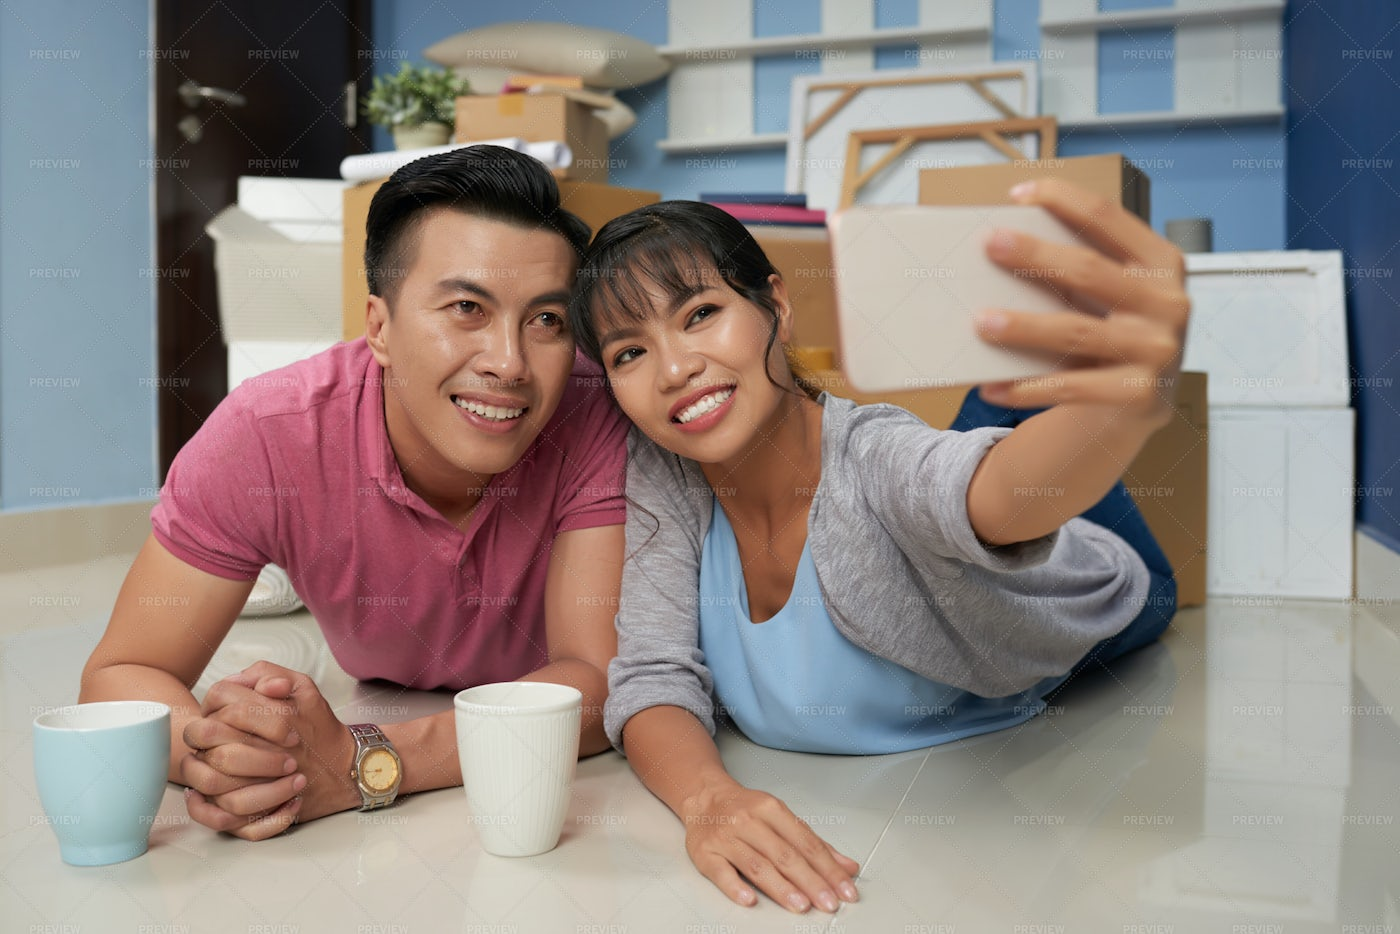 Couple Taking Selfie In New Flat: Stock Photos